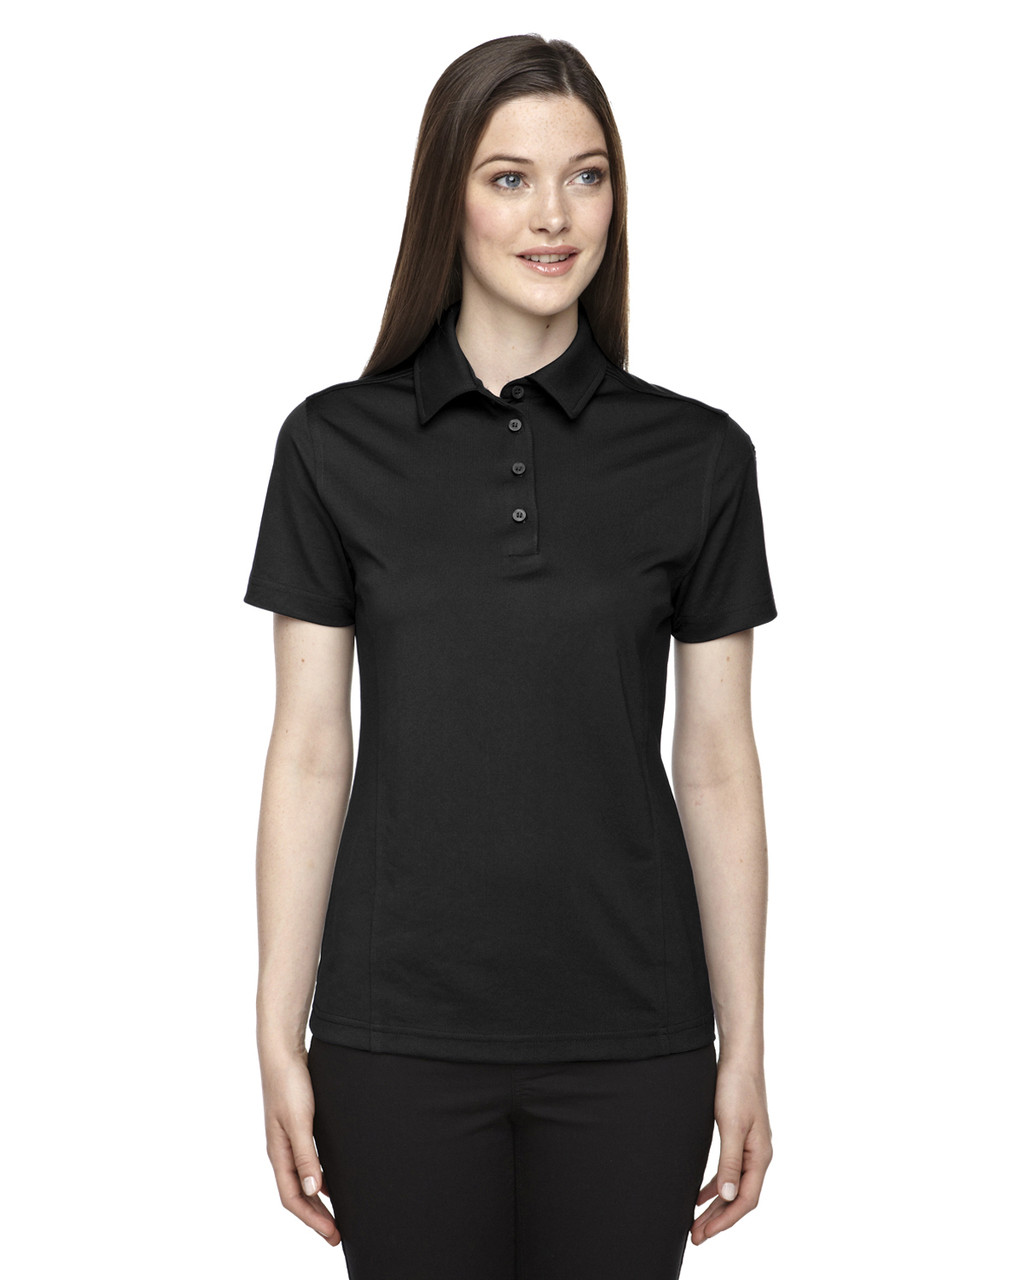 Black - 75114 Ash City - Extreme Eperformance Ladies Snag Protection Plus Polo Shirt